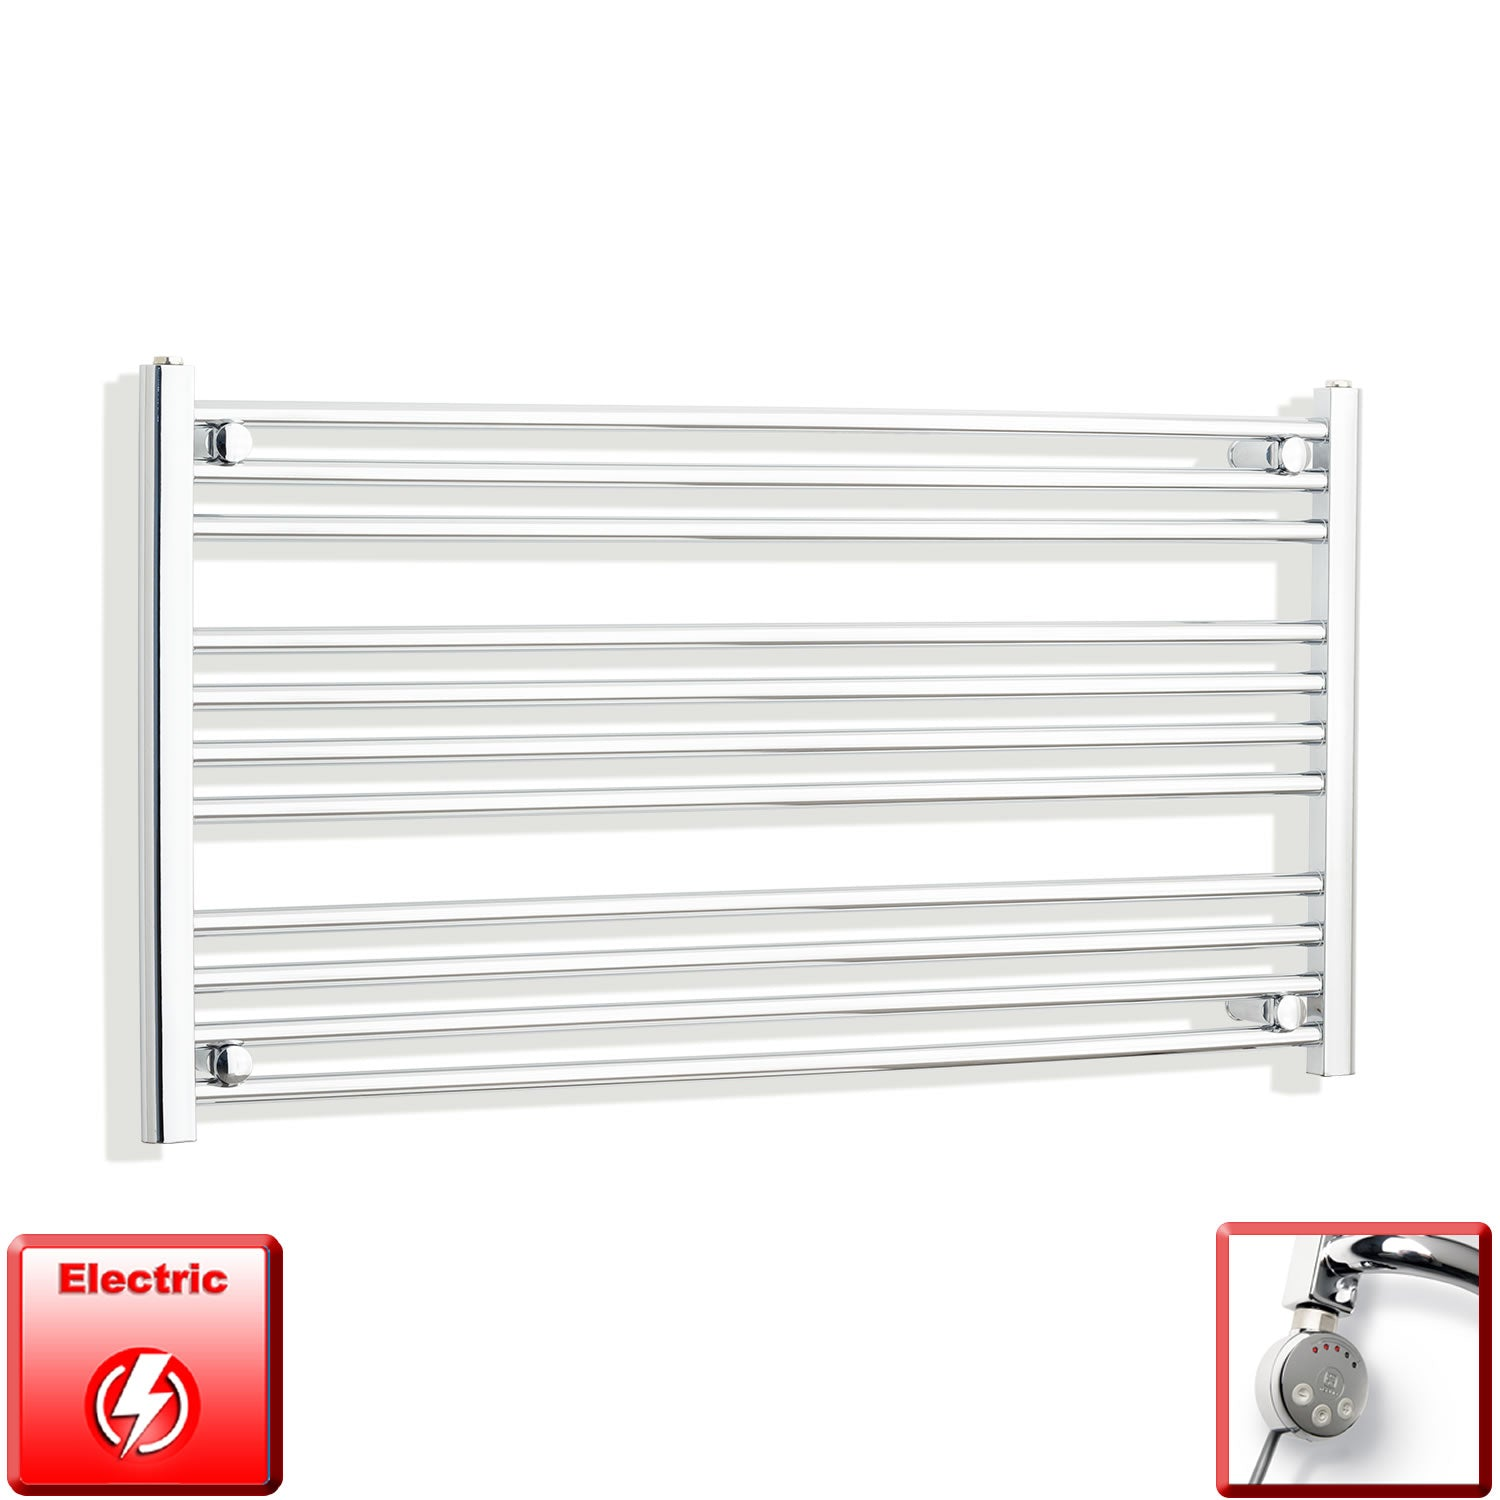 1300mm Wide 600mm High Pre-Filled Chrome Electric Towel Rail Radiator With Thermostatic MEG Element